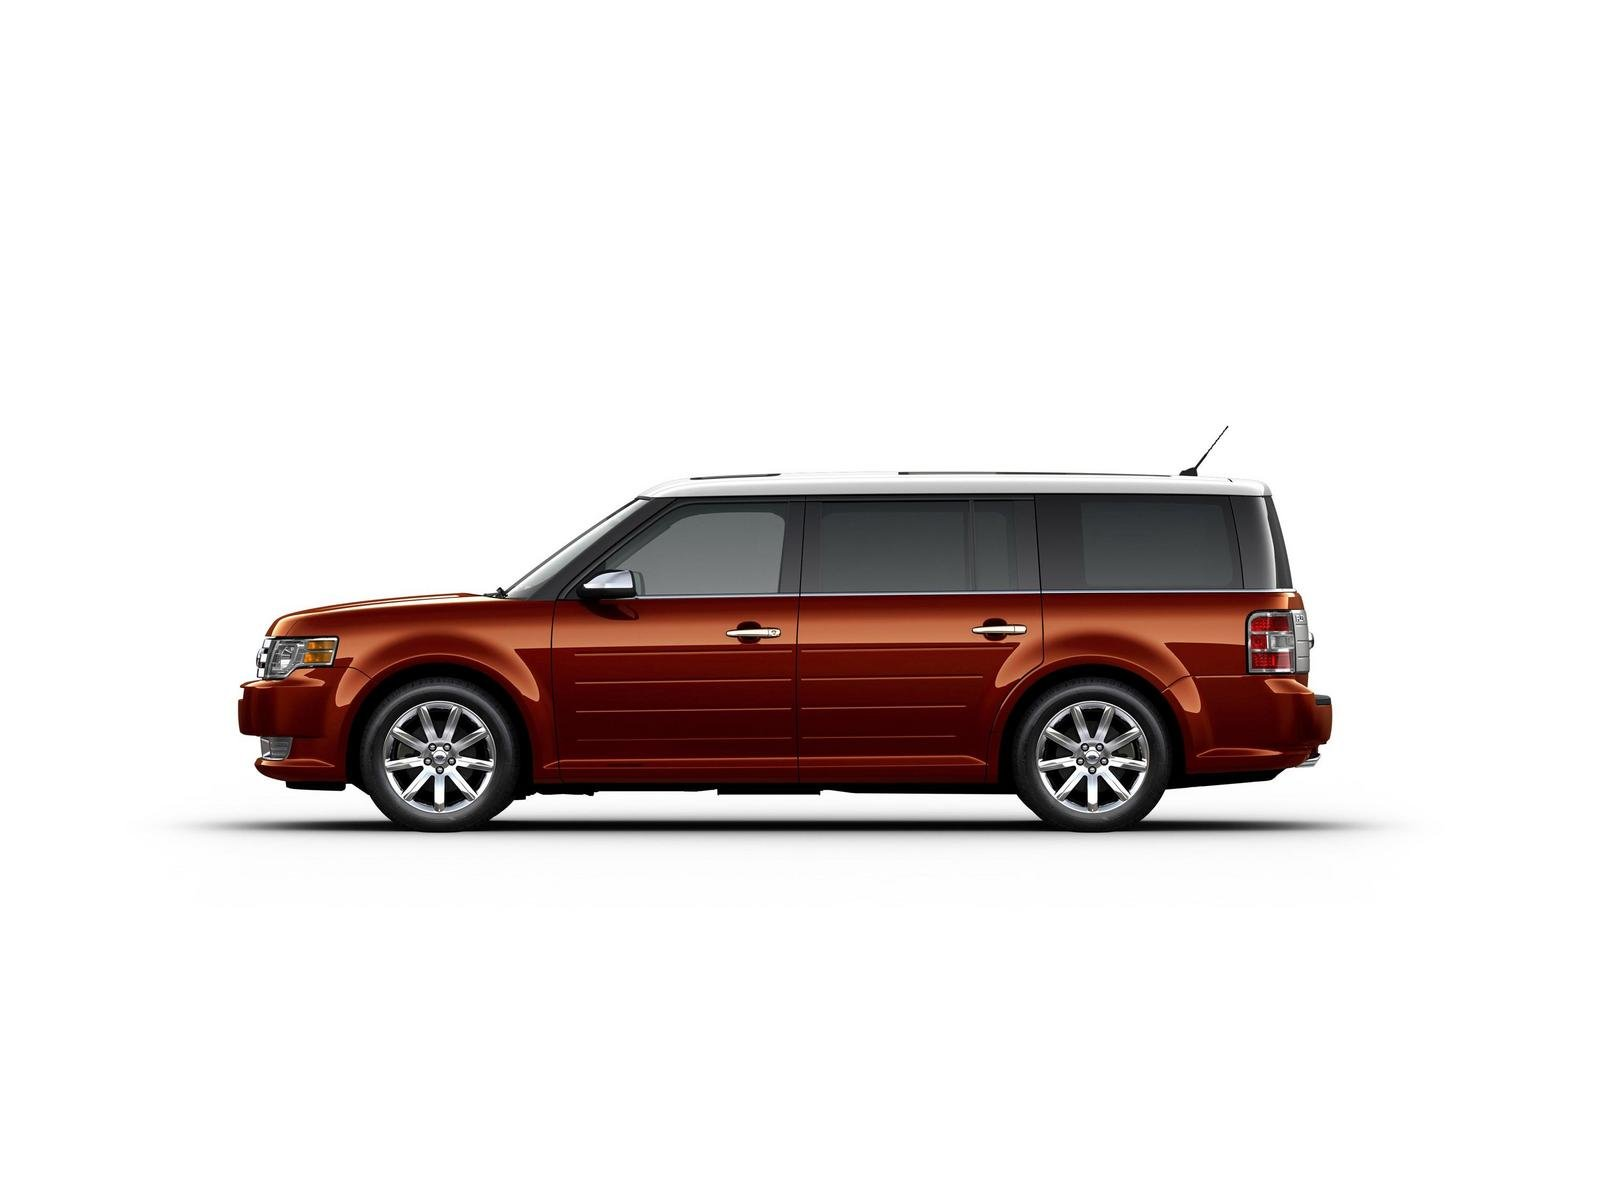 2009 ford flex picture 159187 car review top speed. Black Bedroom Furniture Sets. Home Design Ideas